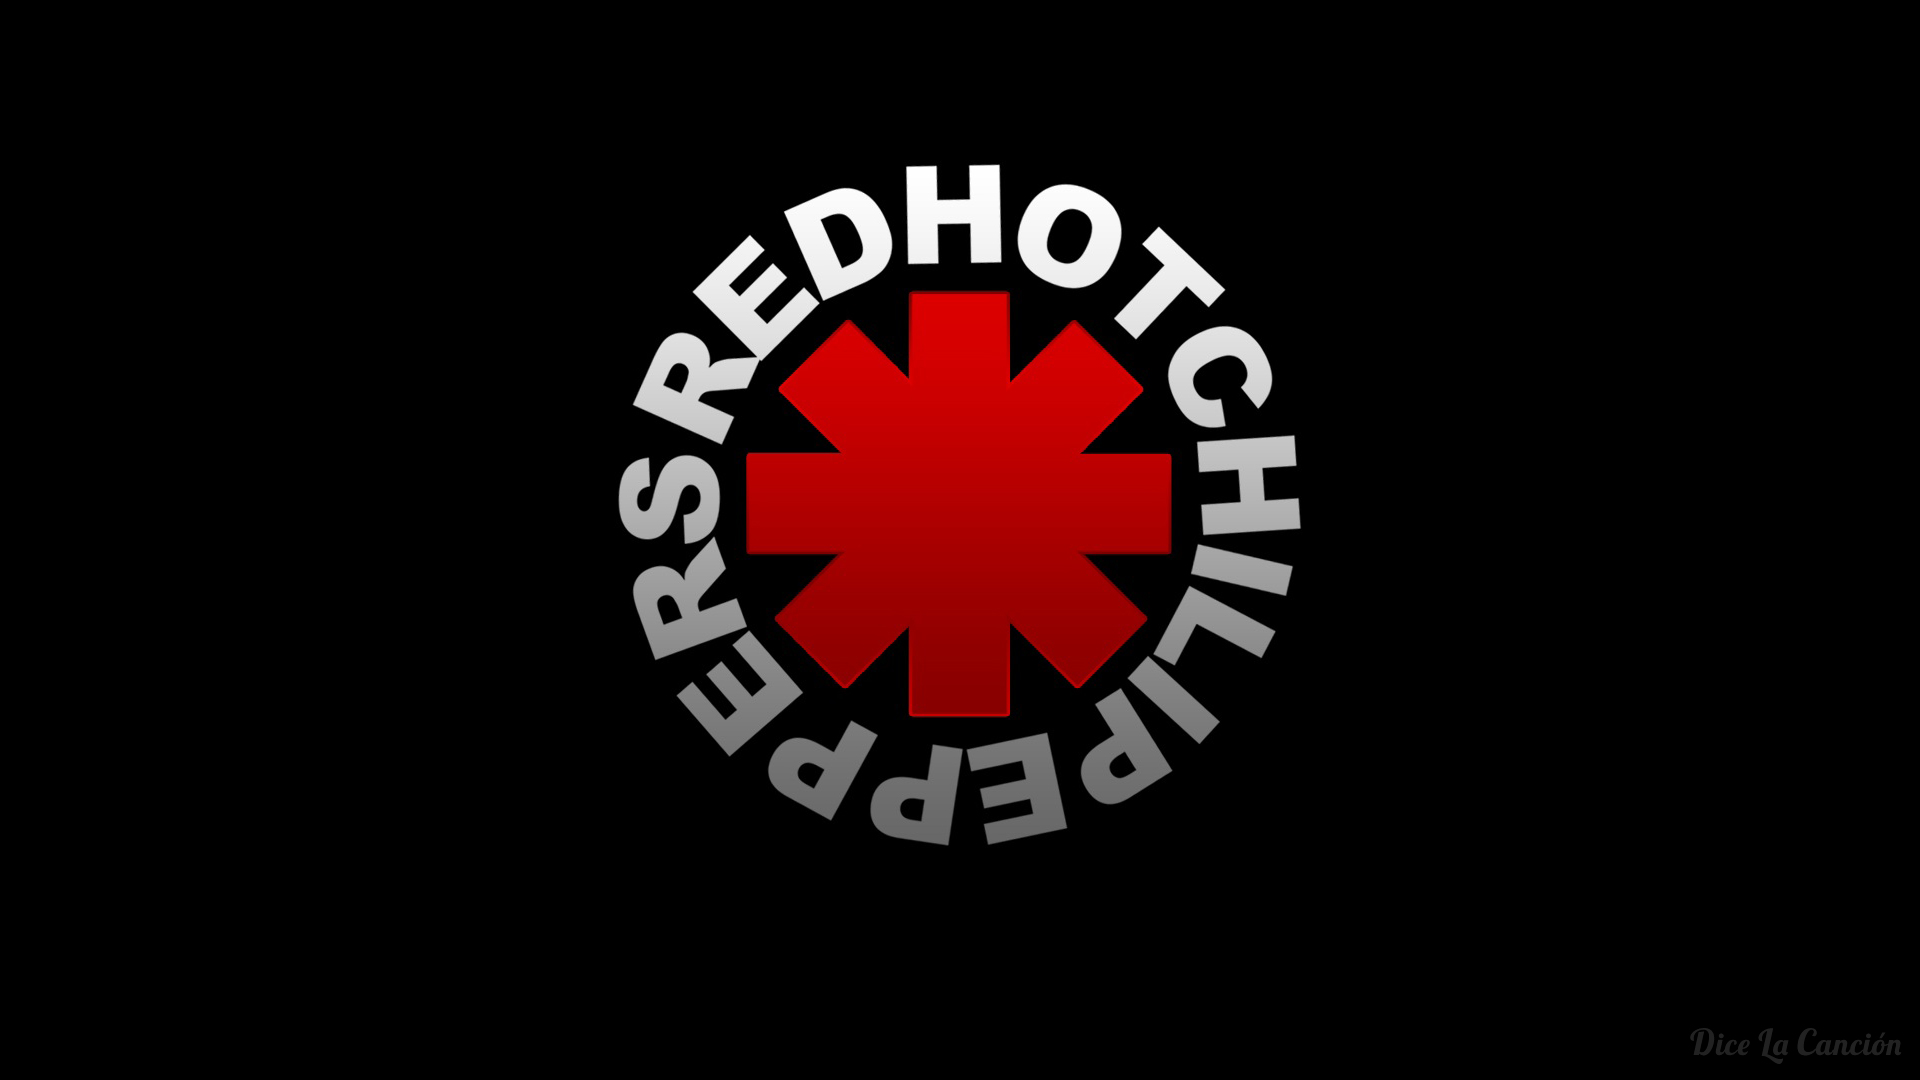 Red Hot Chili Peppers Fondo de escritorio